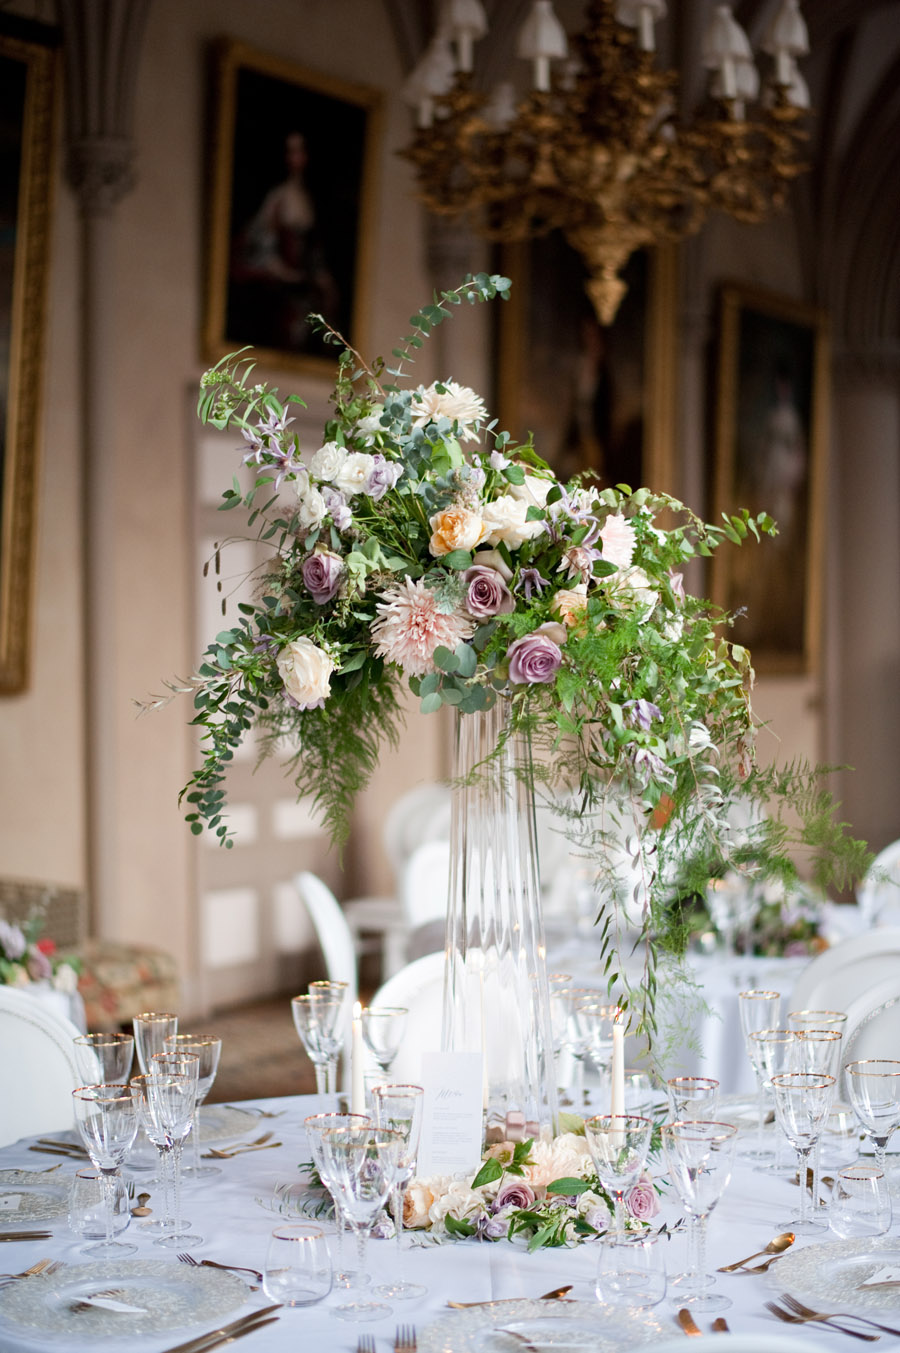 Luxe, modern wedding style ideas by Natalie Hewitt, image credit Rachael Connerton Photography (19)